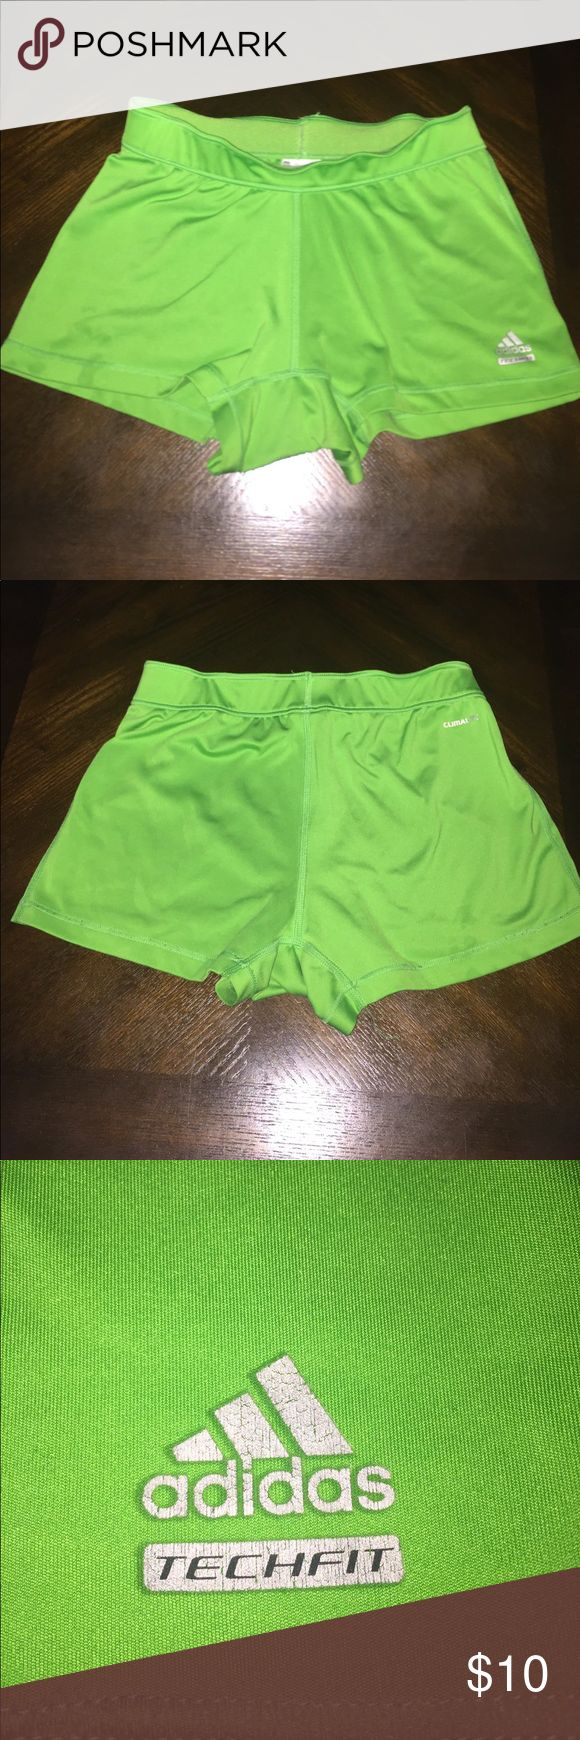 Women's Green Adidas Spandex Shorts These spandex shorts are great for athletic uses like under team sport uniforms. adidas Shorts